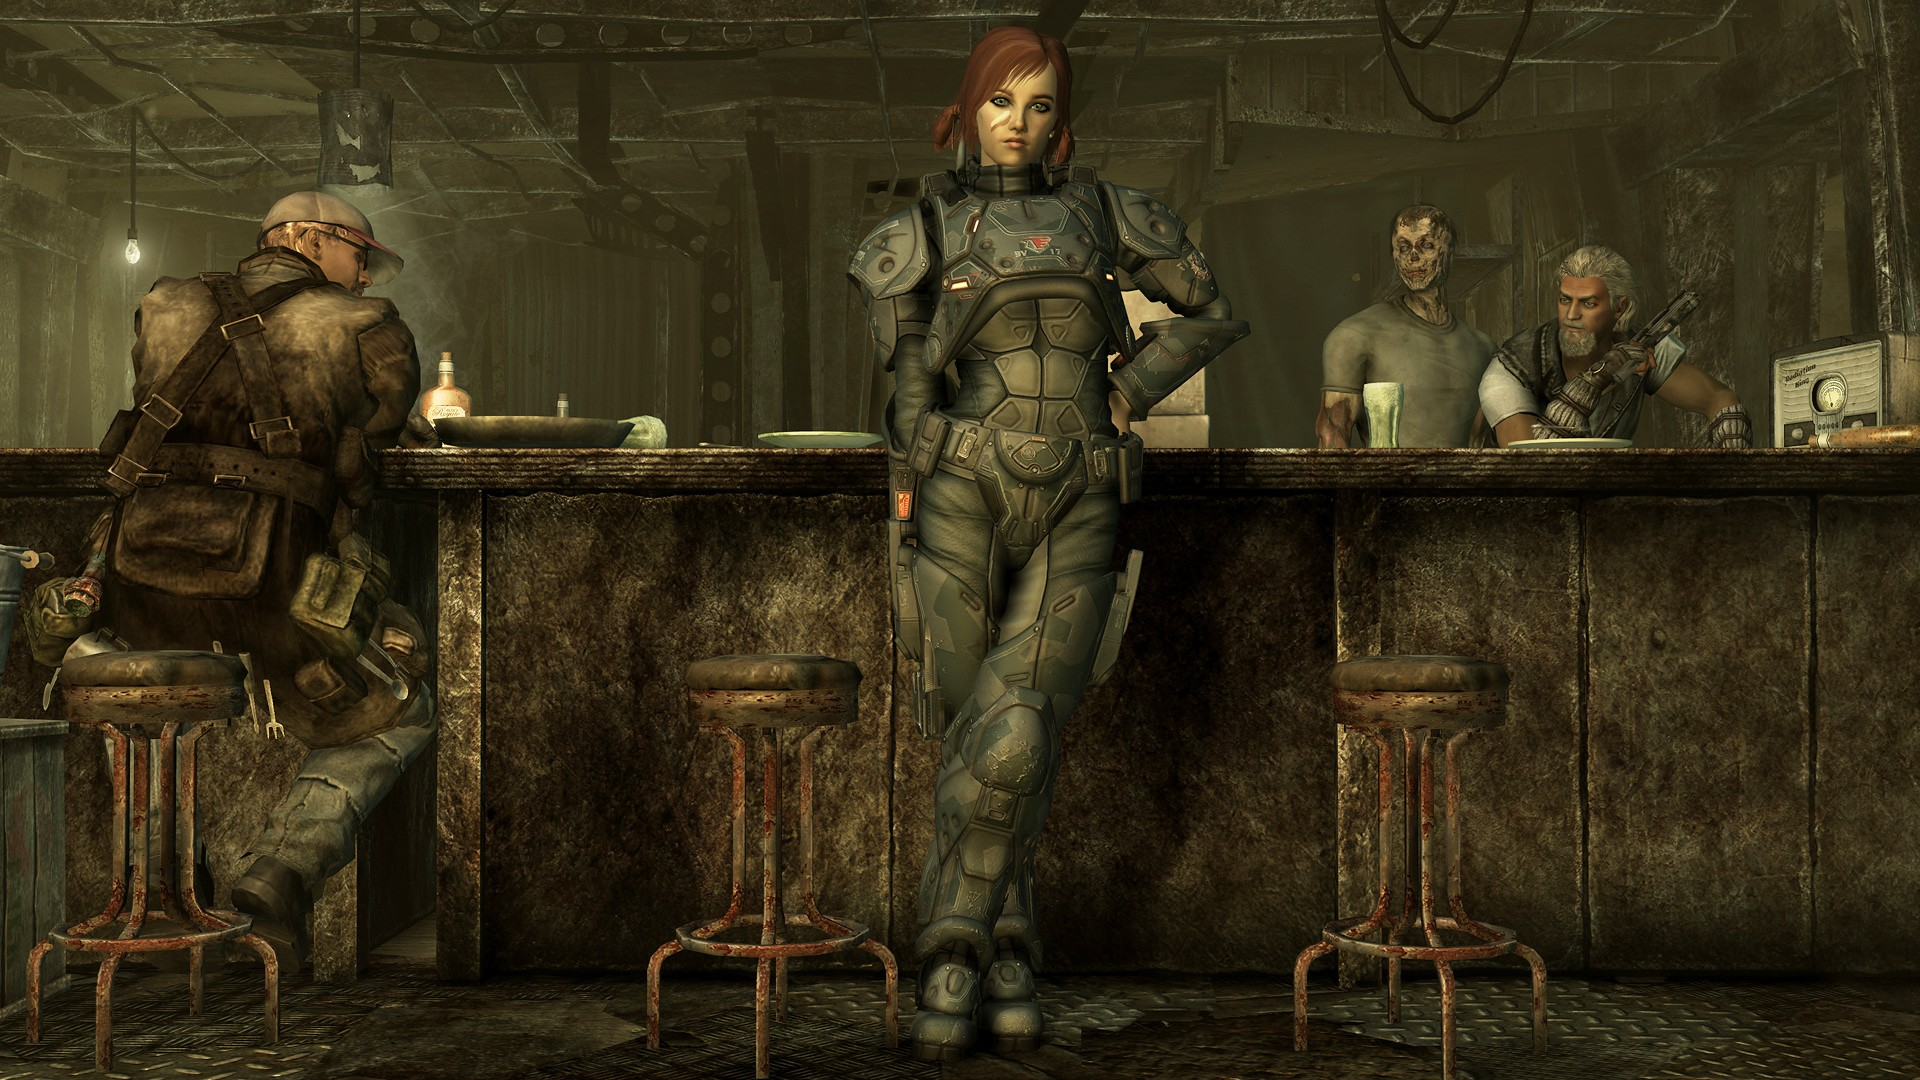 Fallout 3 - the girl at the bar